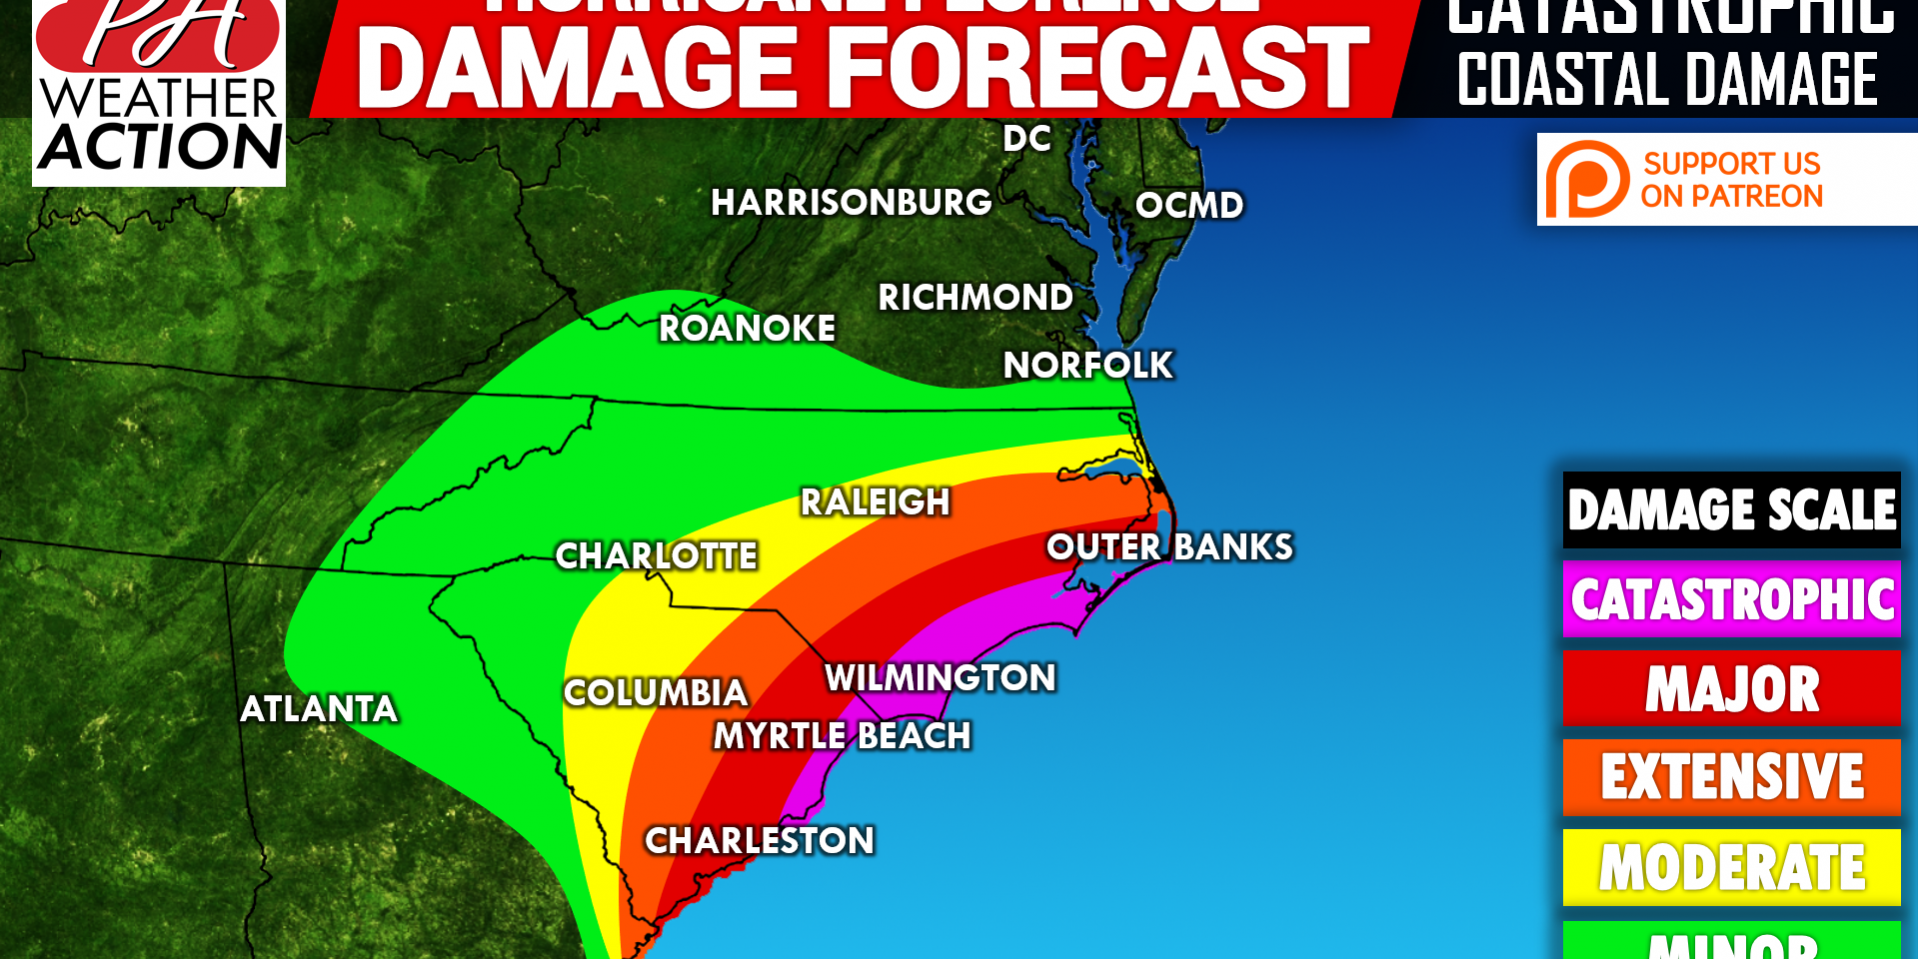 Major Hurricane Florence to Cause Catastrophic Damage to the